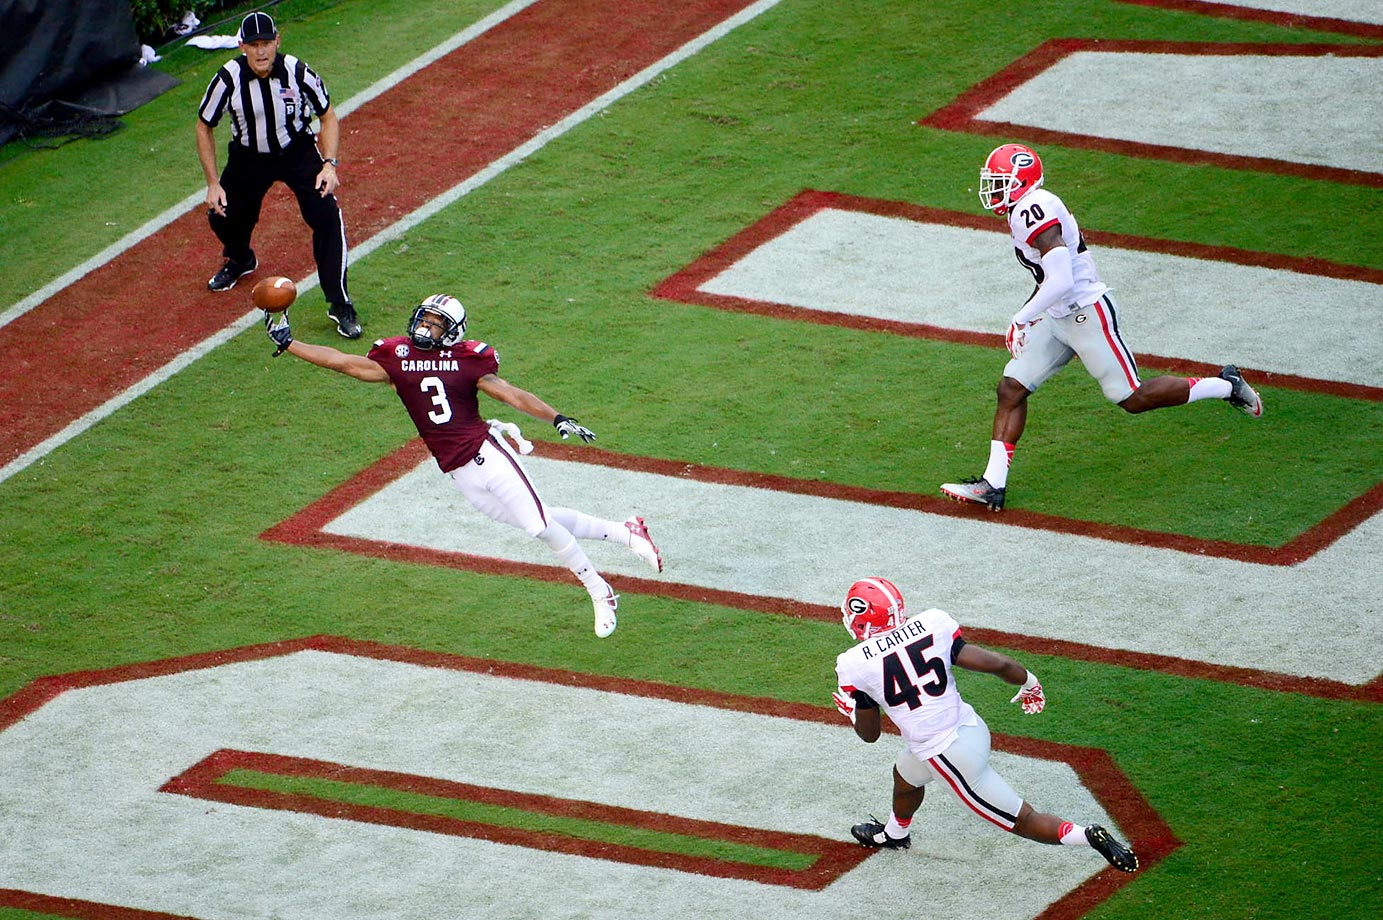 South Carolina's Nick Jones can't quite make this catch against Georgia, but his team still won 38-35.